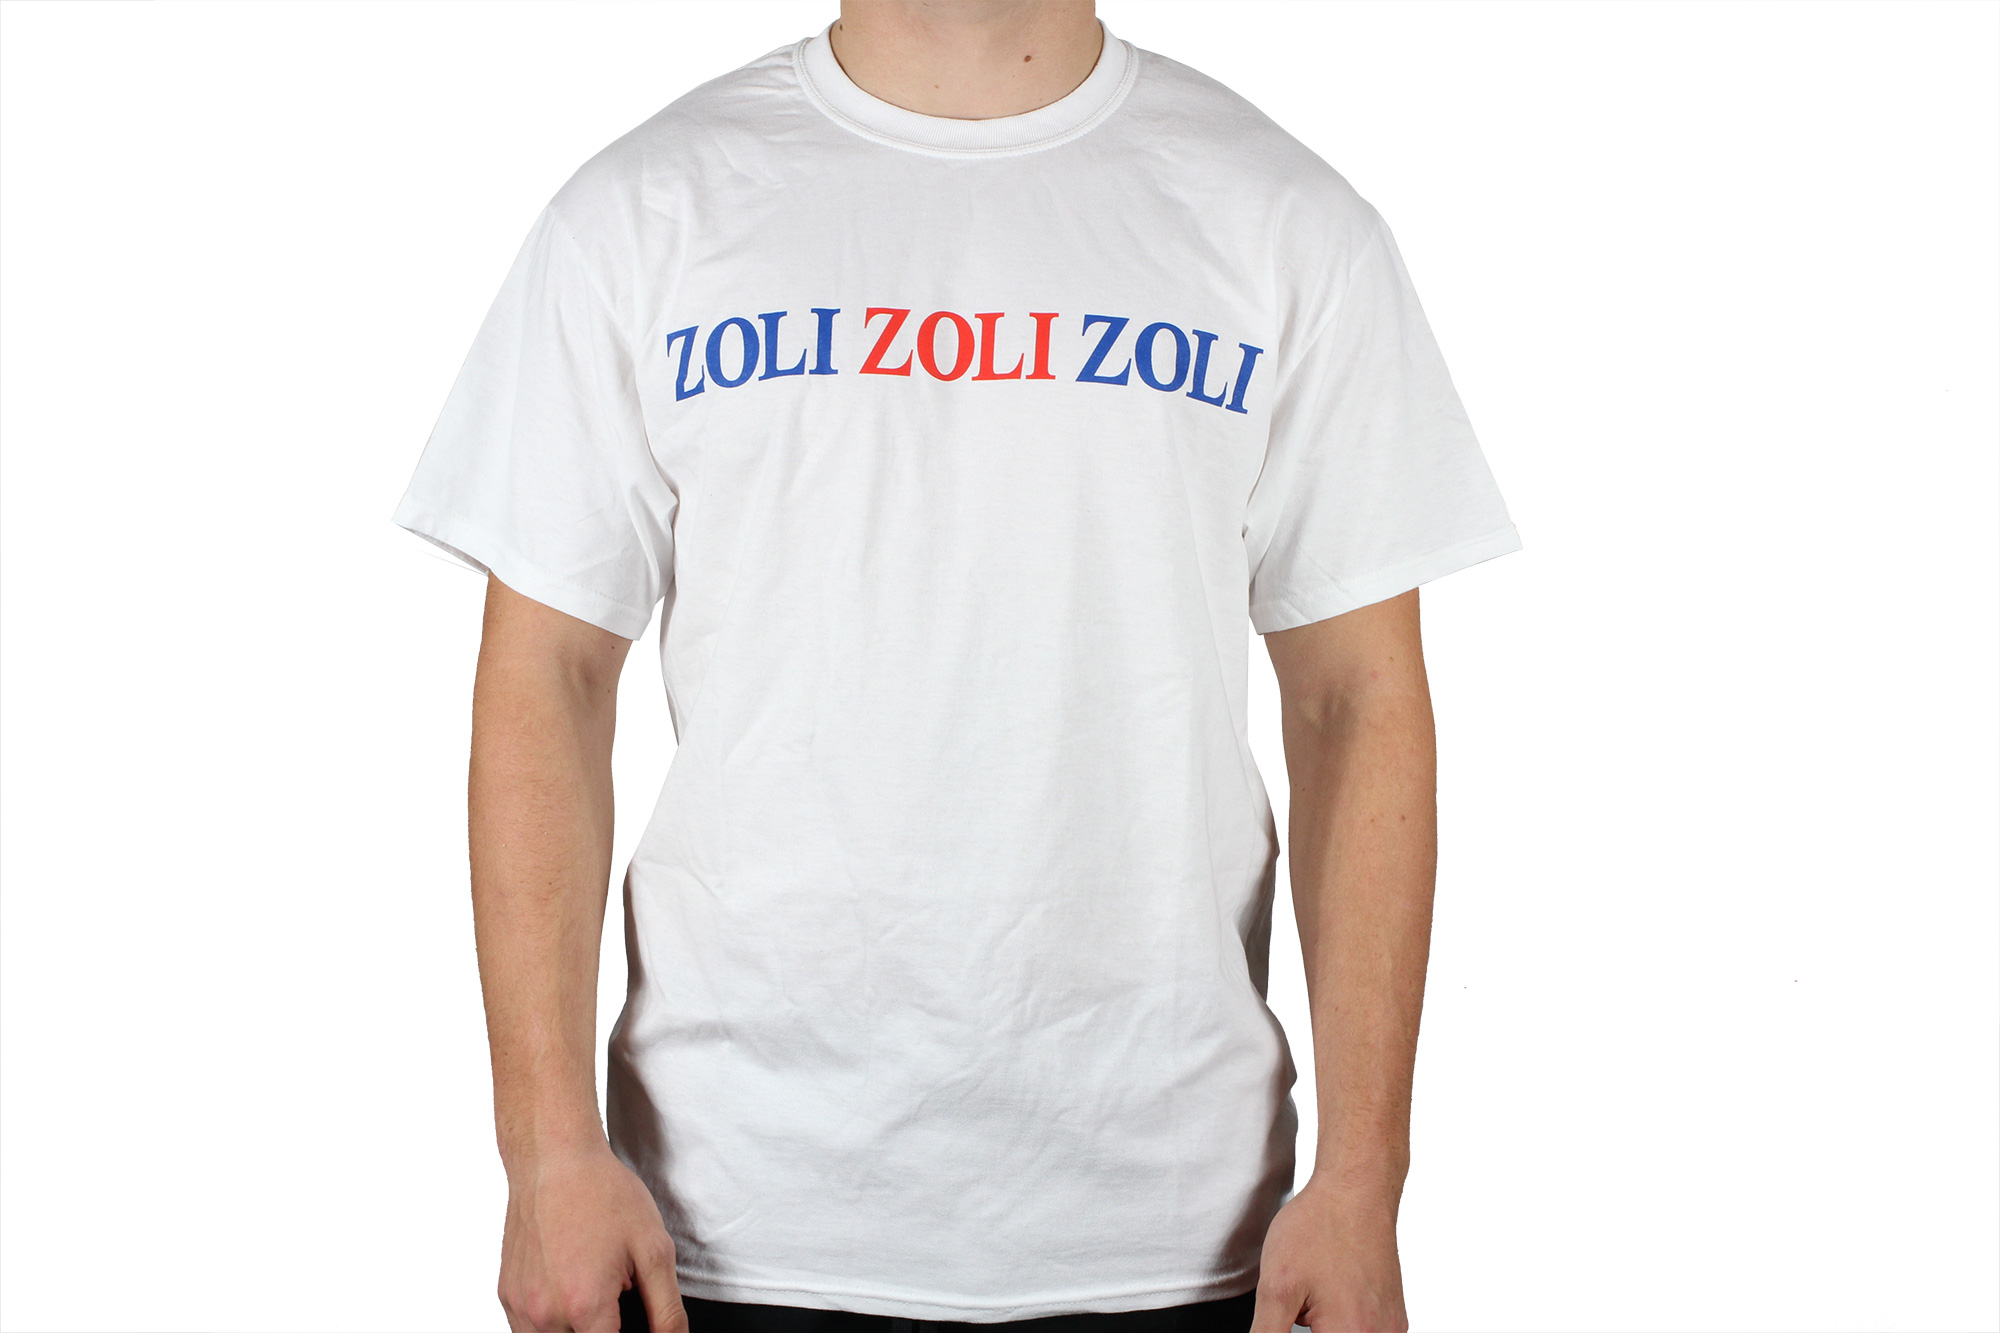 Zoli Zoli Zoli White Cotton Shirt